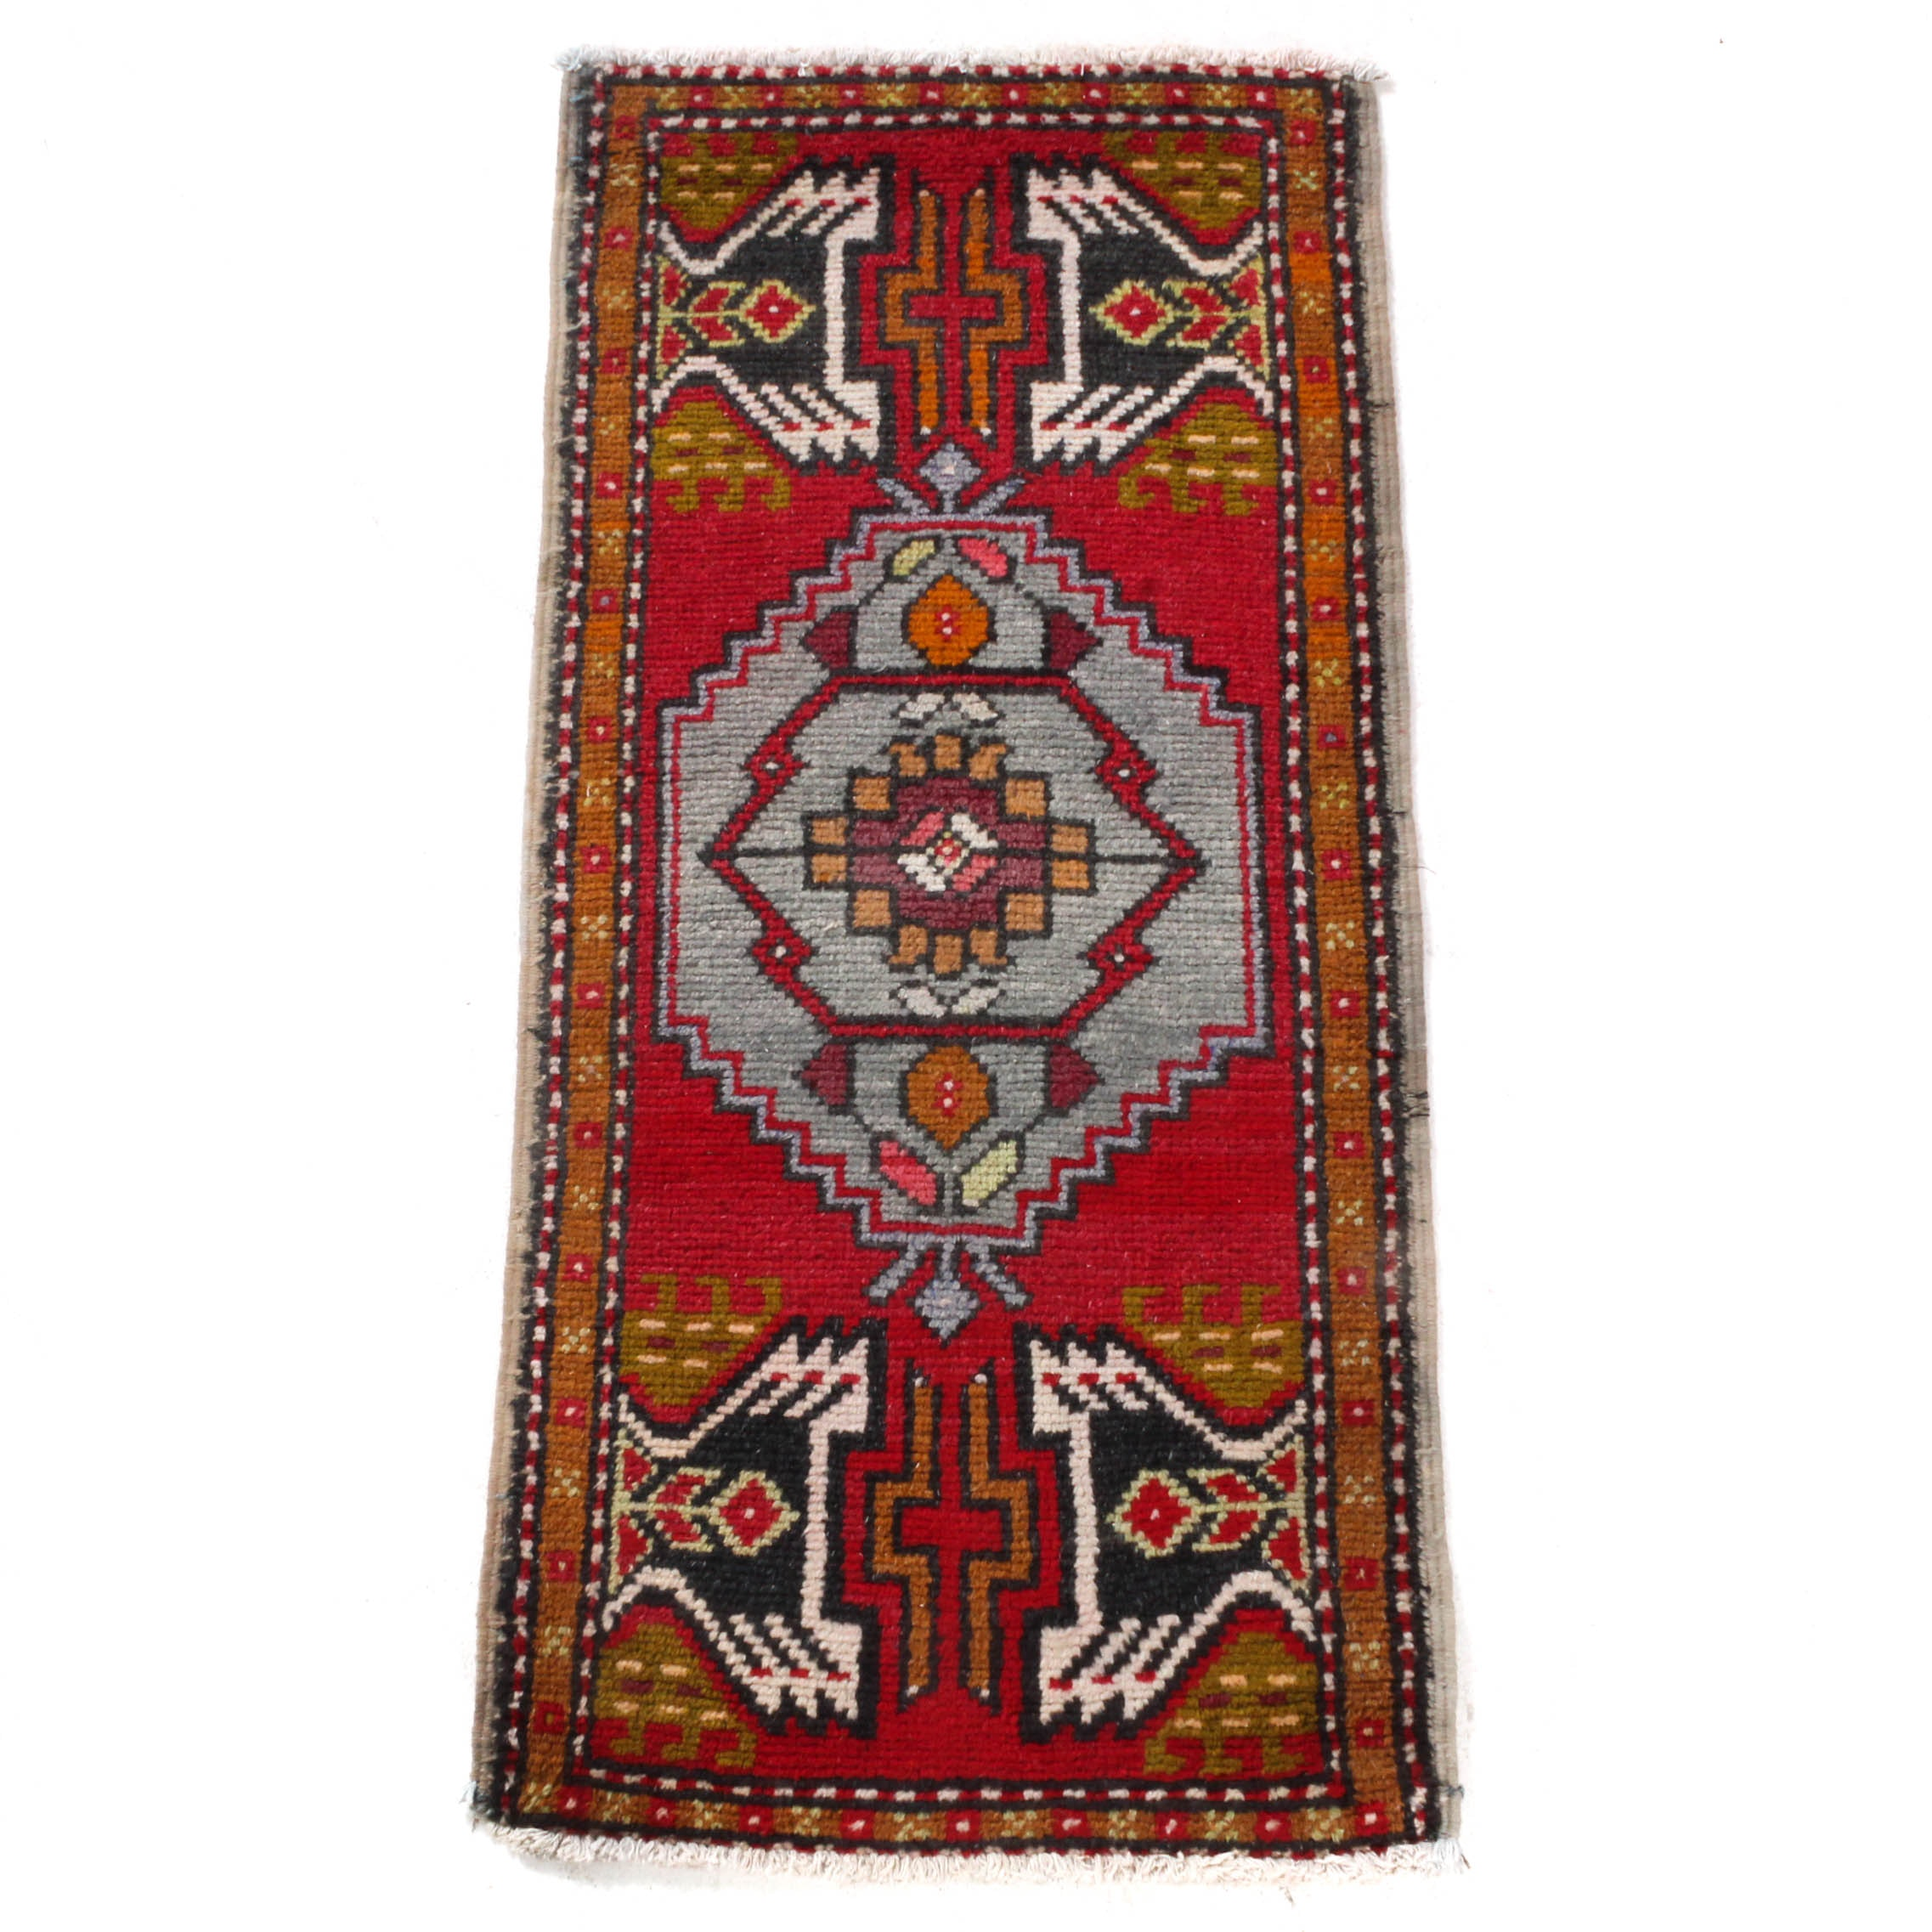 Antique Hand-Knotted Turkish Village Rug